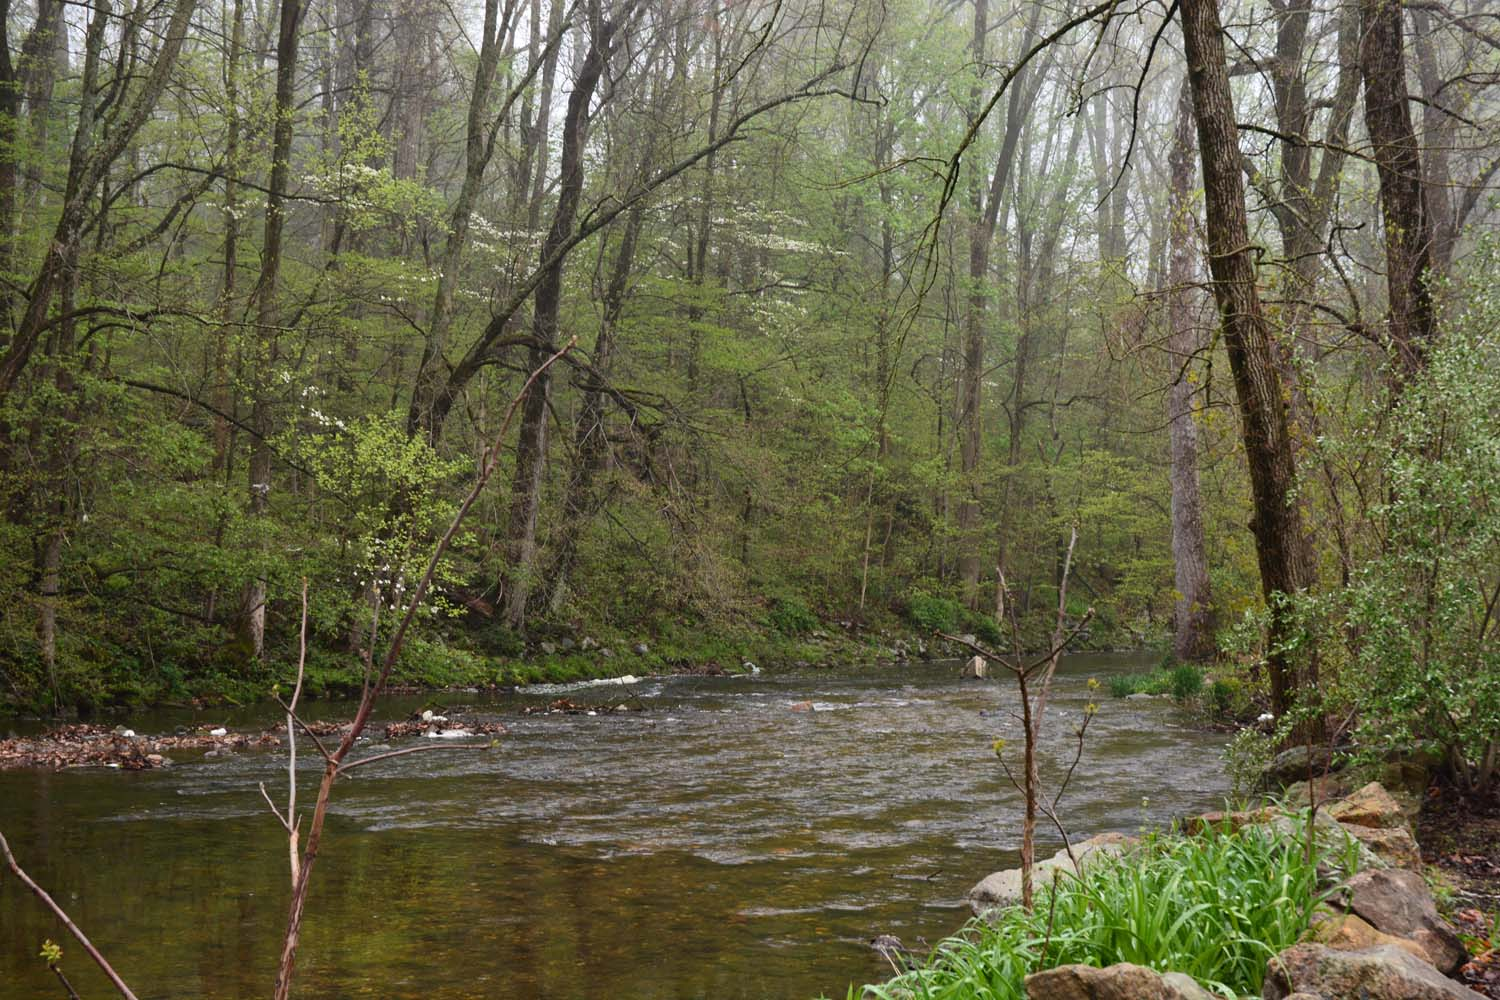 Brandywine Creek flows through the RV park